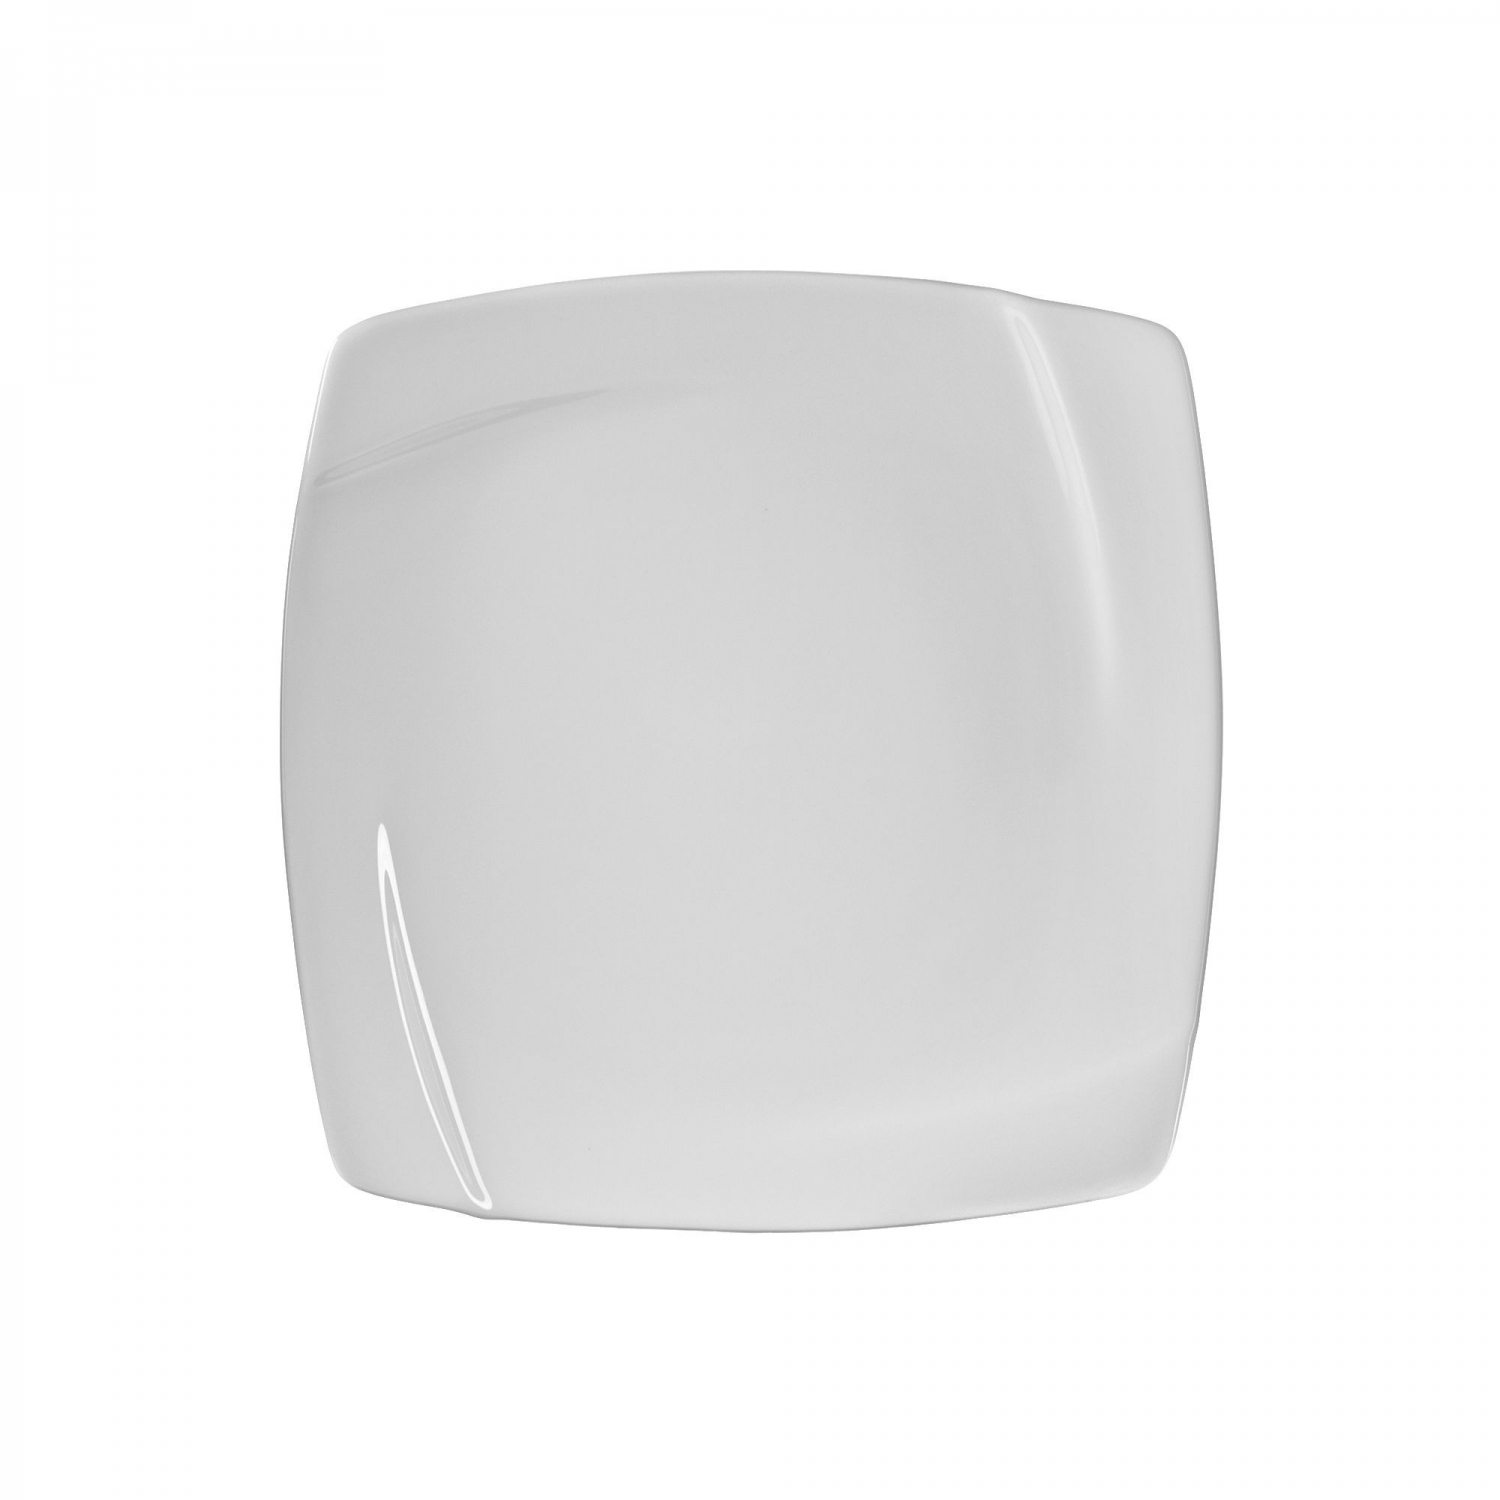 "10 Strawberry Street NOU-4SQ 7-7/8"" Nouve Square White Salad / Dessert Plate"